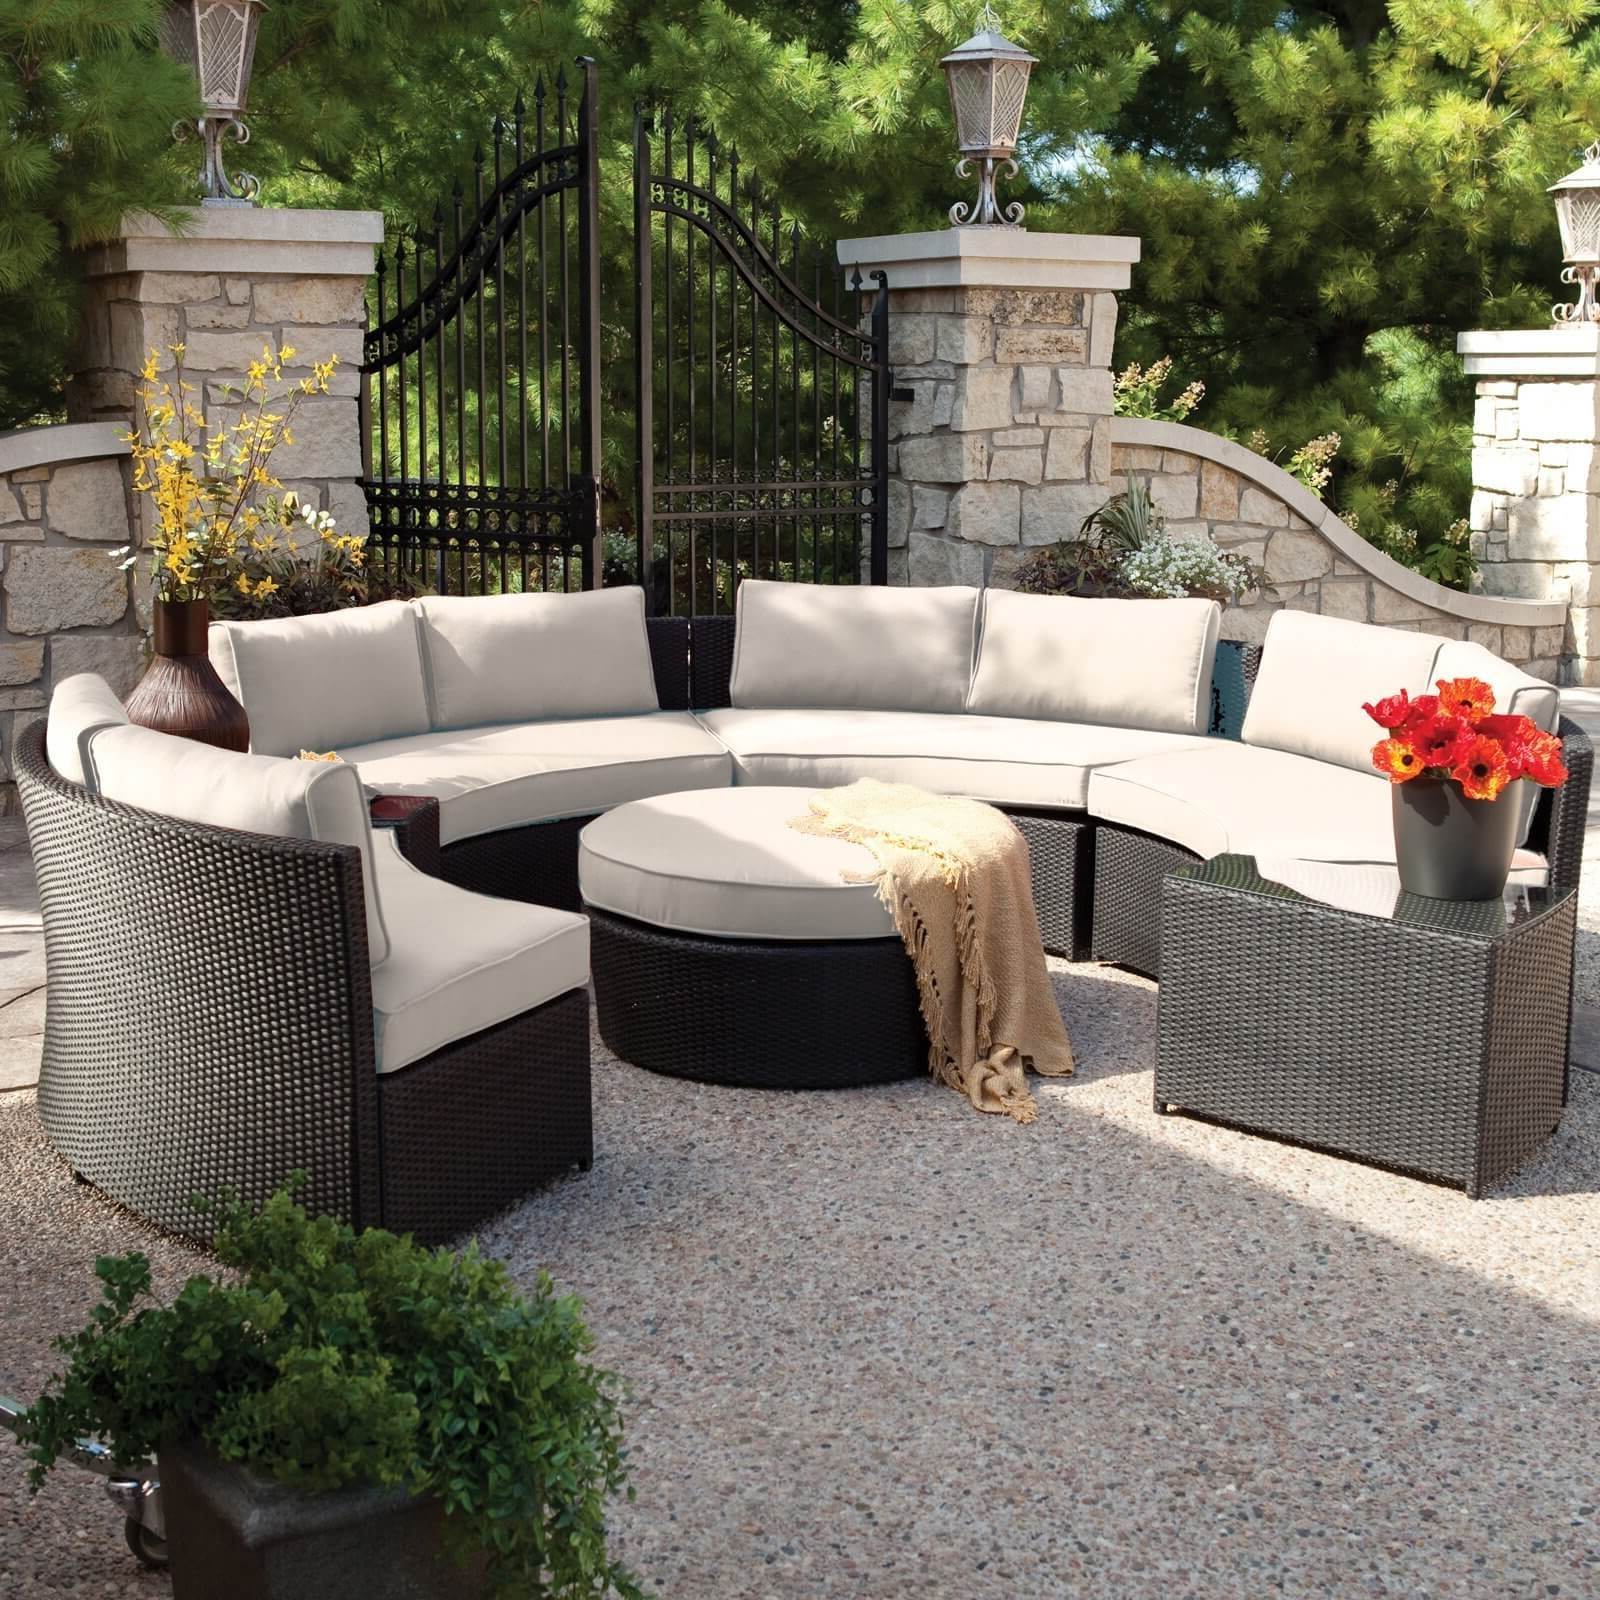 Most Popular Conversation Patio Sets With Outdoor Sectionals In Patio : Gray Veracruz Outdoor Sectional Sofa Outdoor Ideas Of White (View 9 of 15)